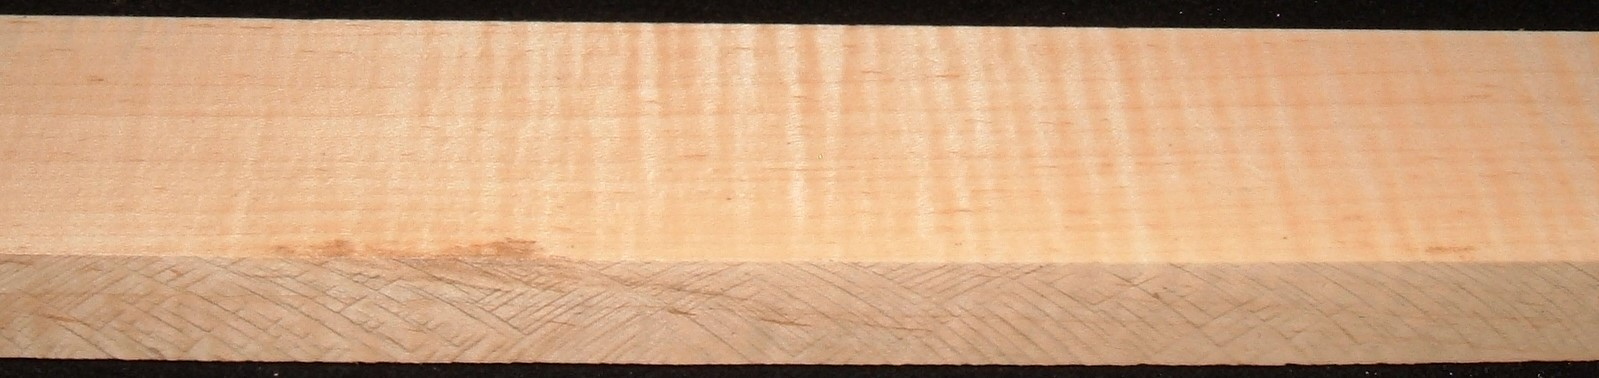 QS2102-21JK,  1-1/4x2-1/4x41, Quartersawn Curly Maple